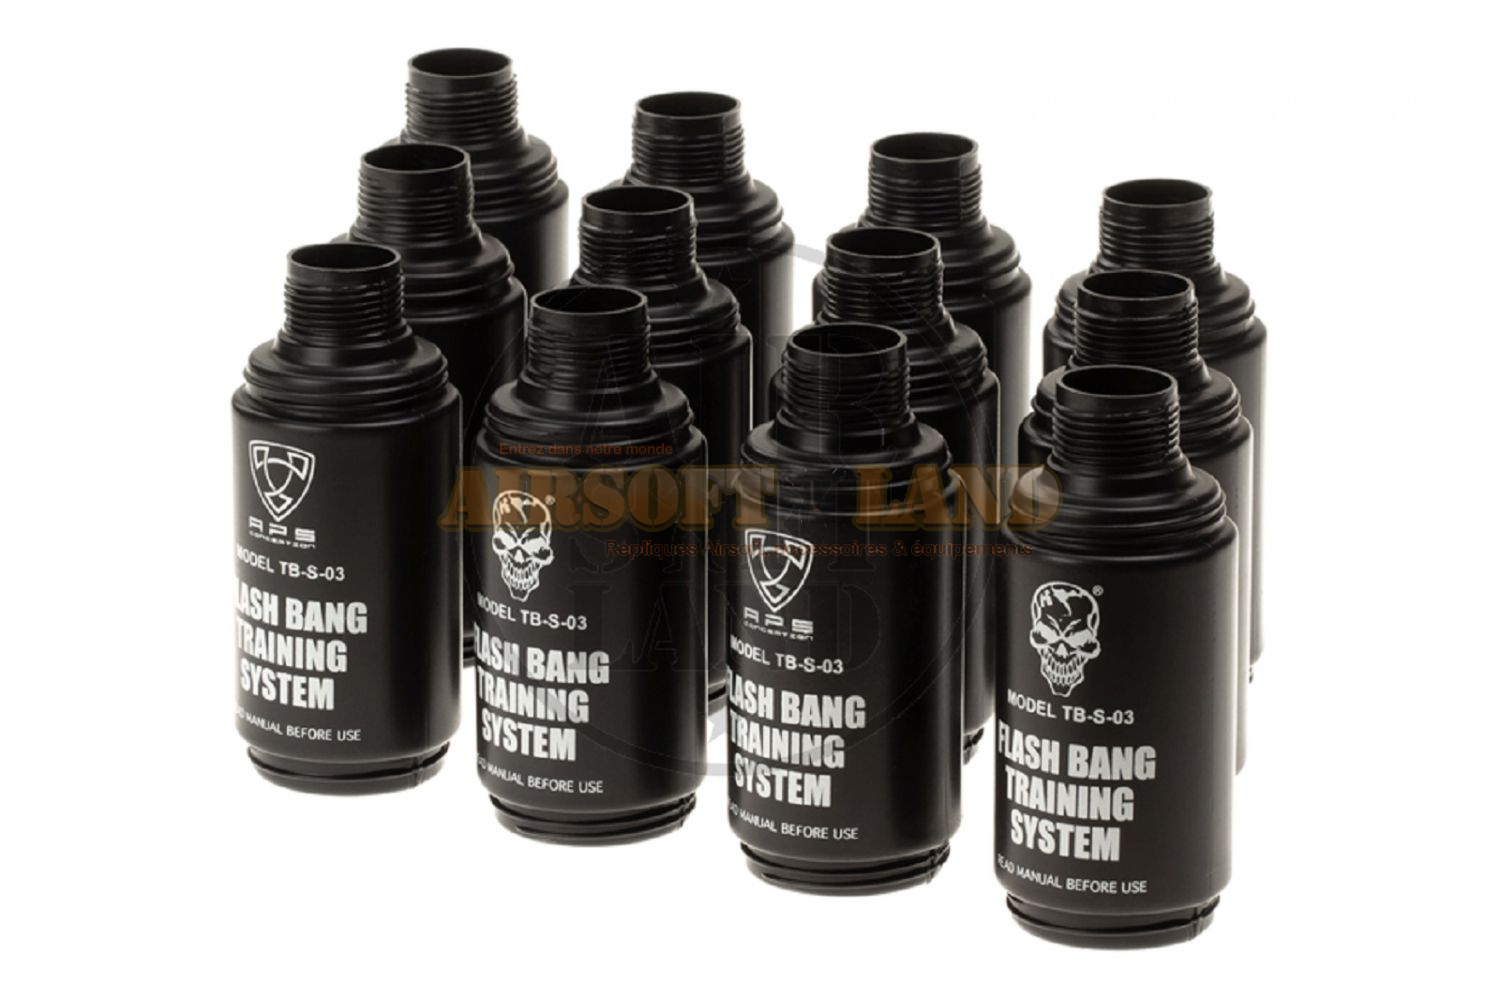 Coques pour grenade type flashbang Thunder-B (x12)